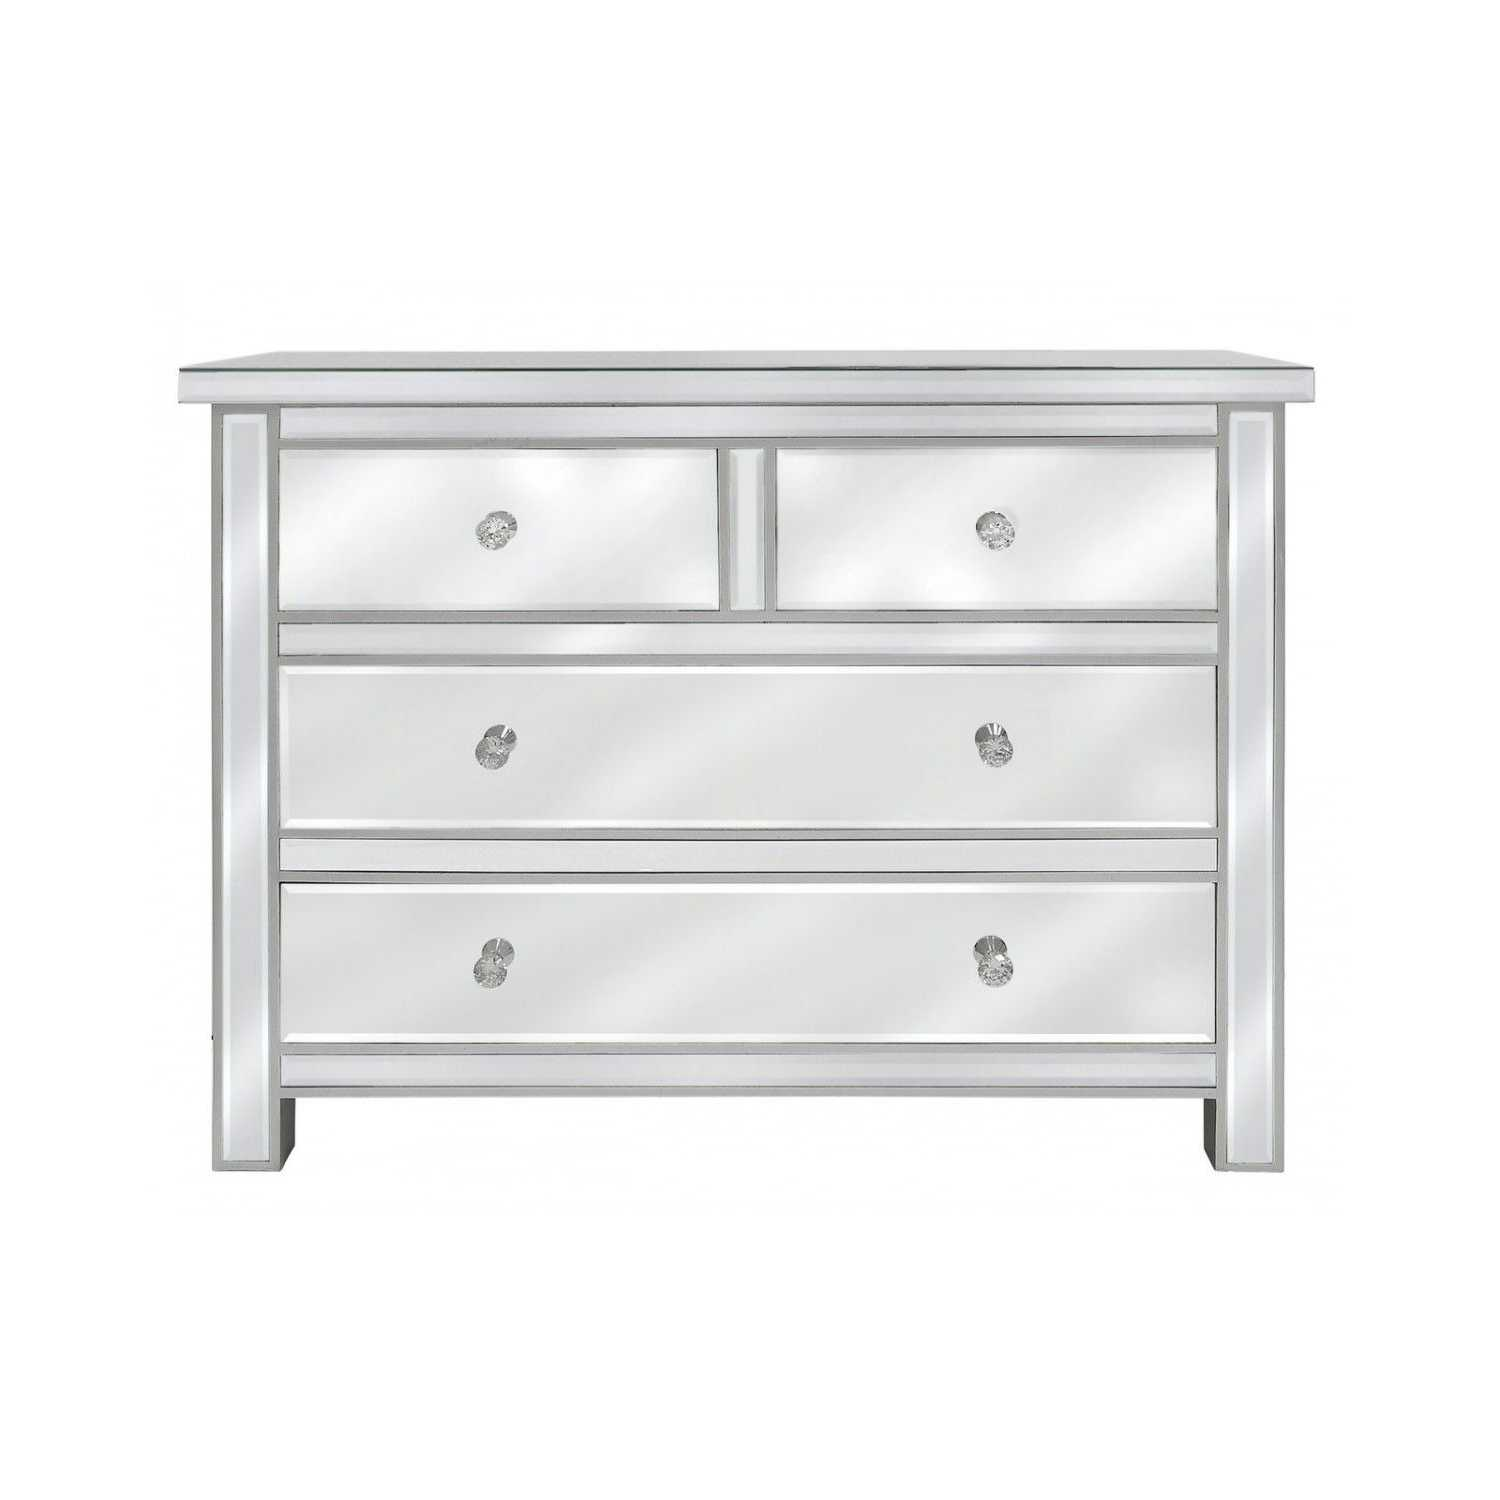 alice mirrored glass four drawer chest of drawers with crystal handles. Black Bedroom Furniture Sets. Home Design Ideas